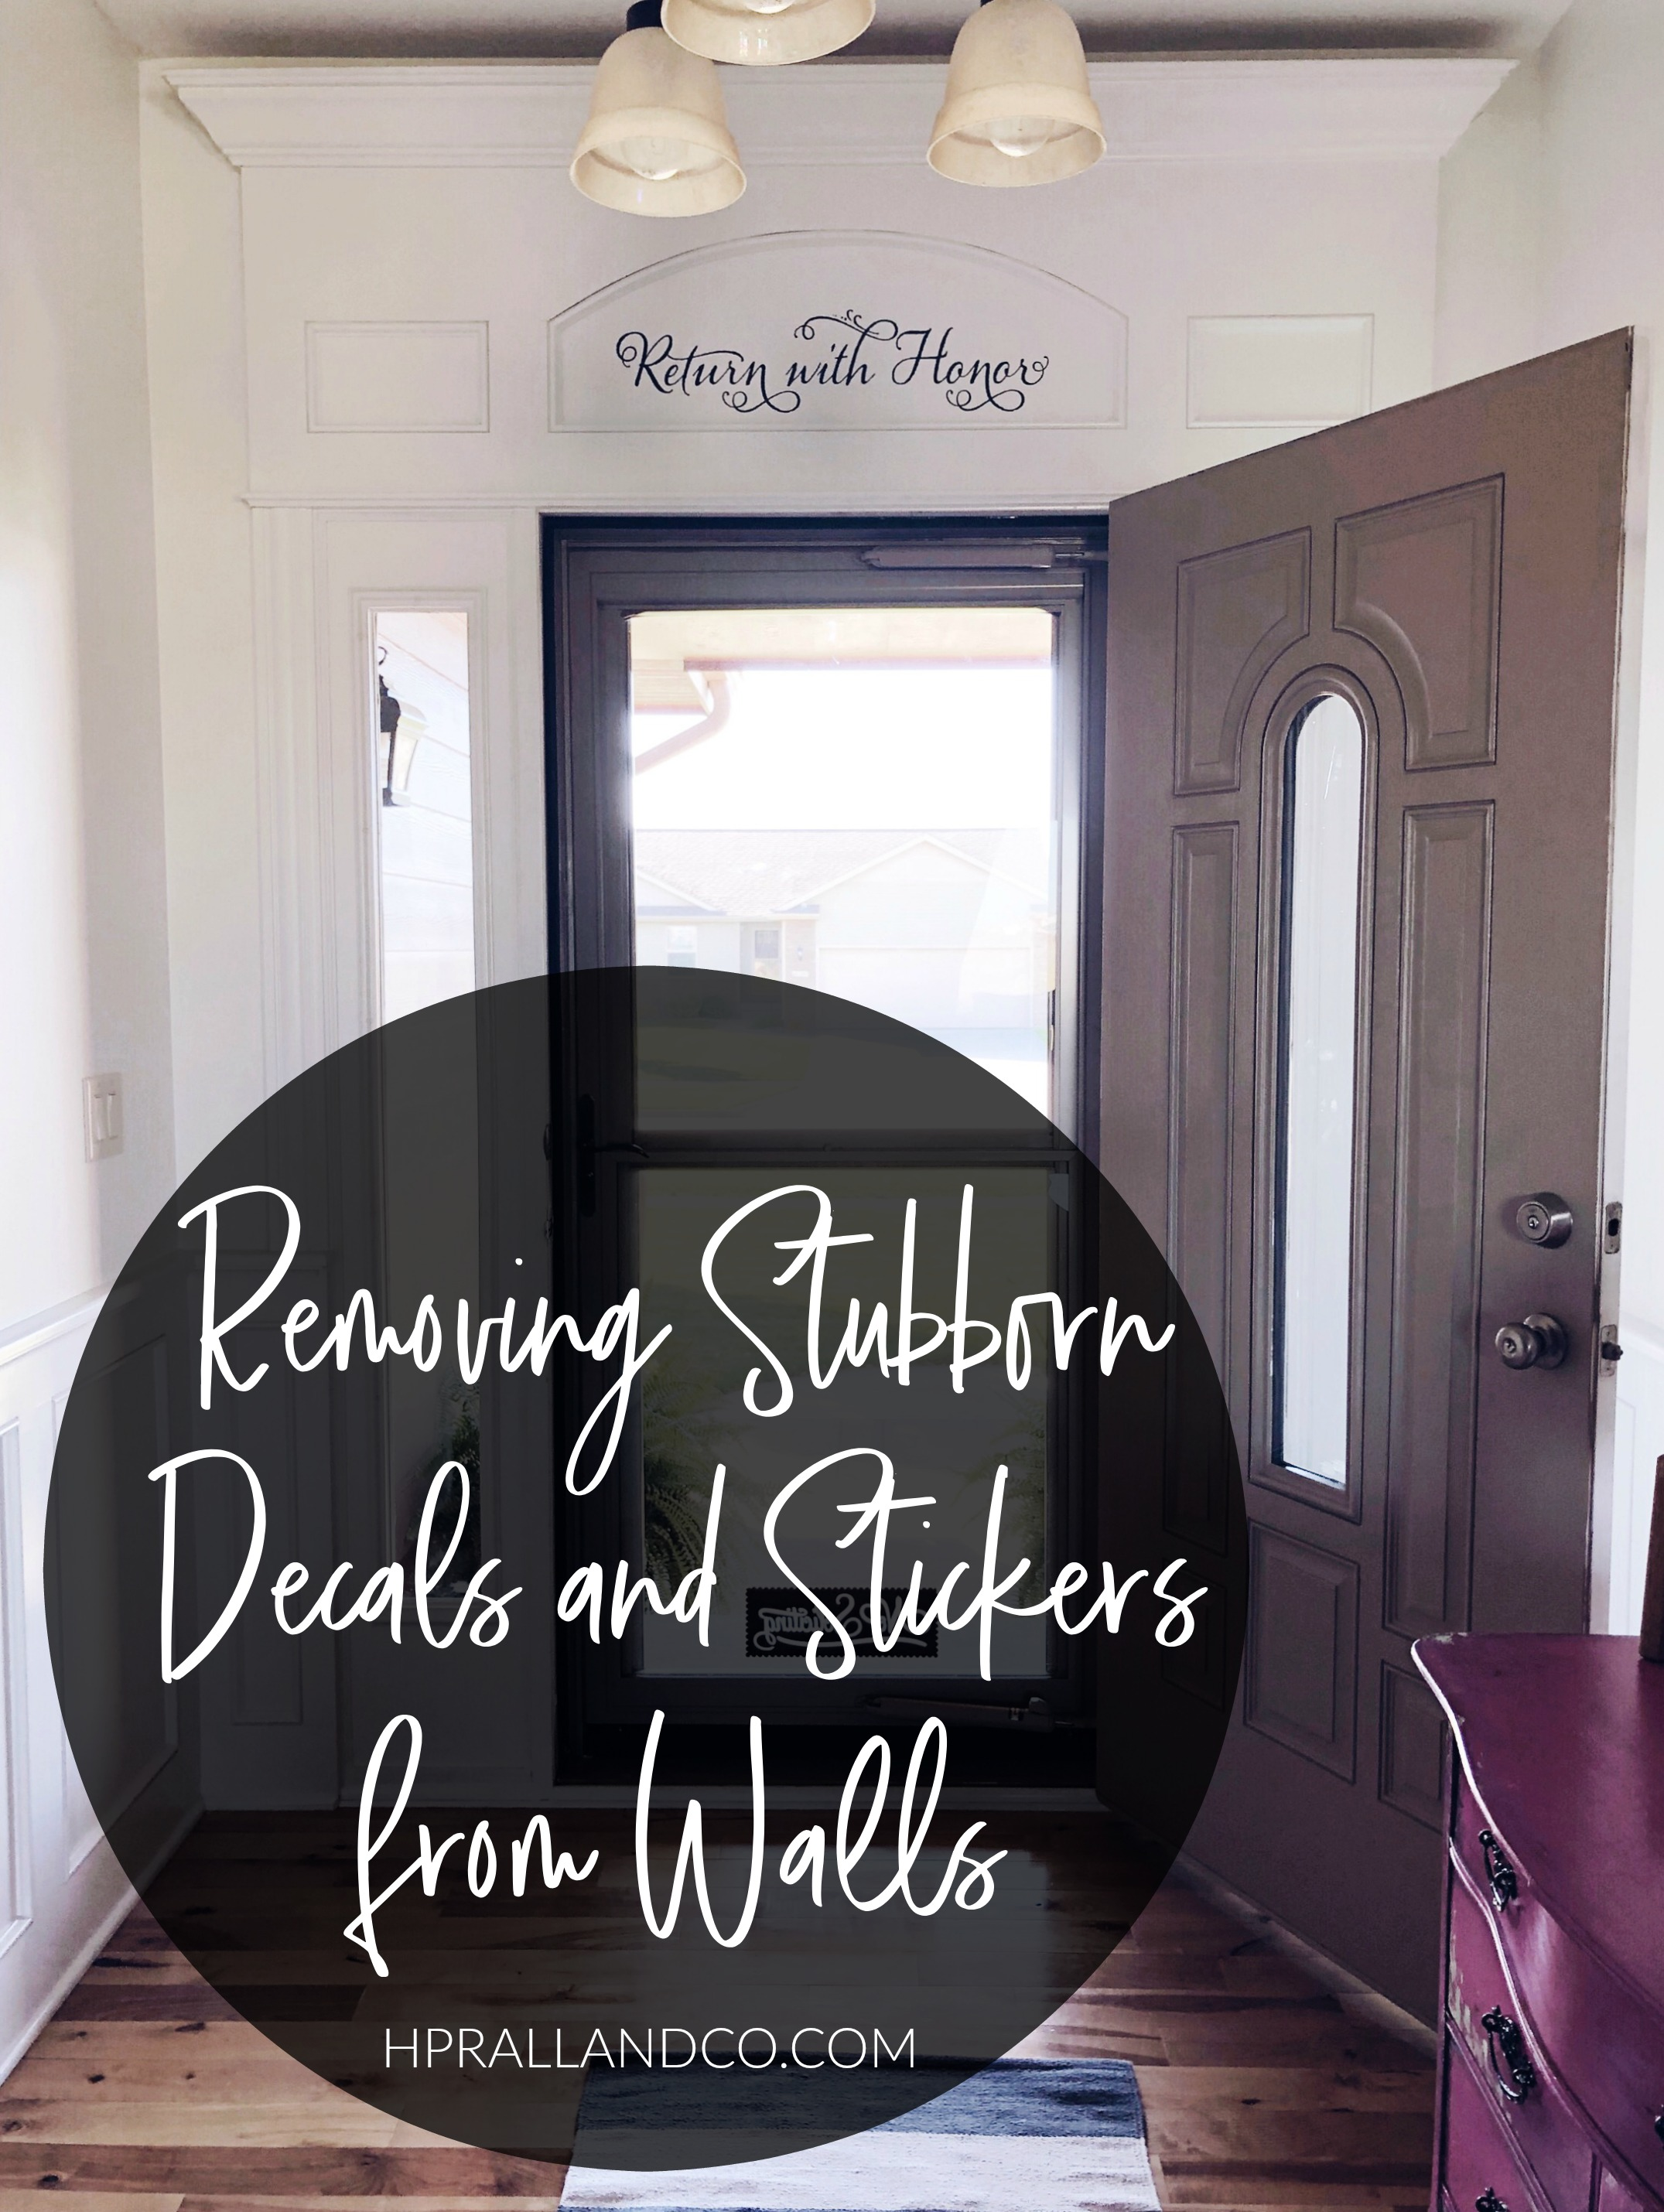 Removing Stubborn Decals and Stickers from Walls | hprallandco.com